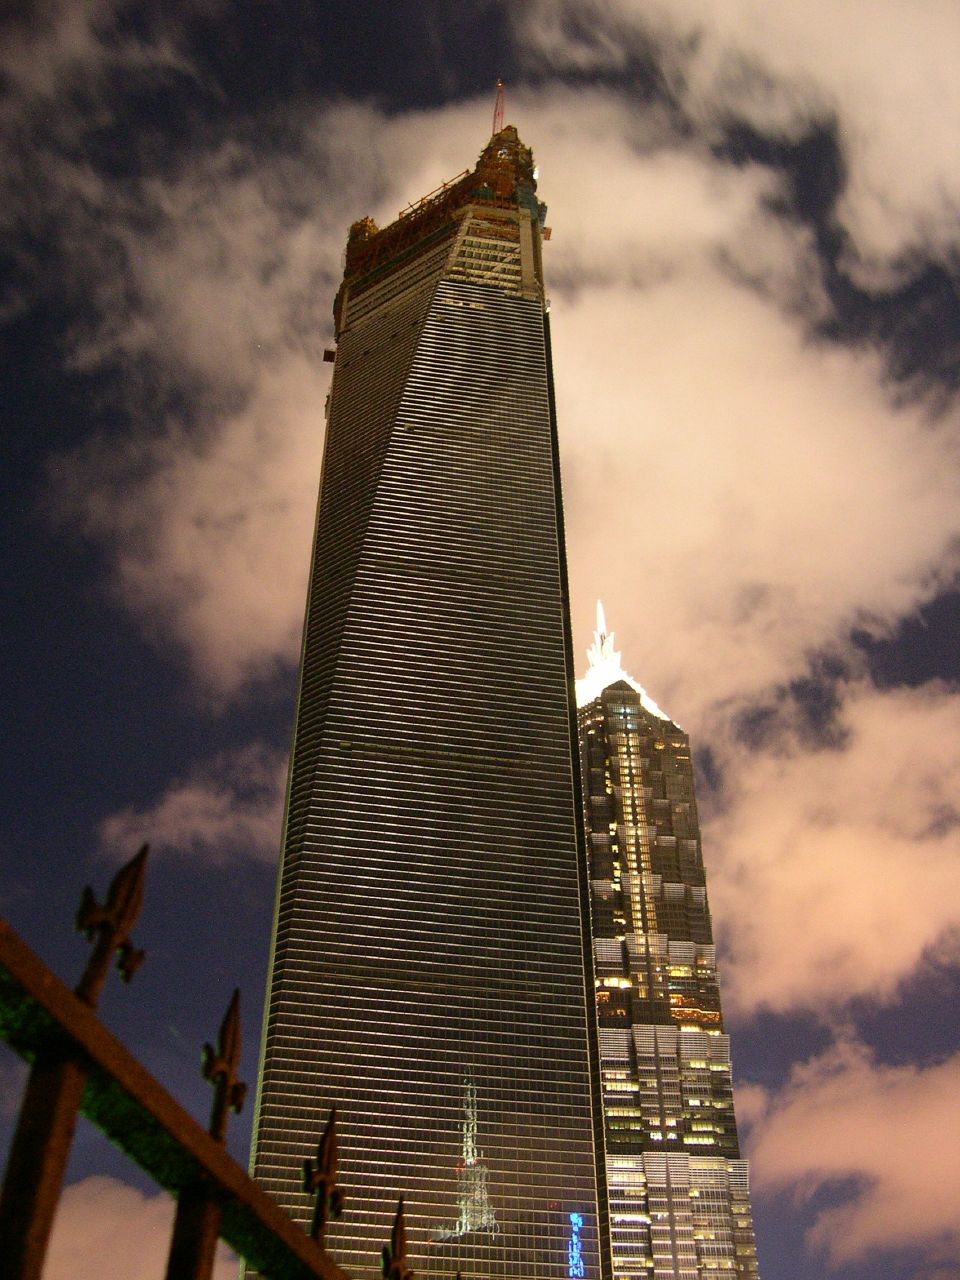 Third tallest building in the world in Shanghai.